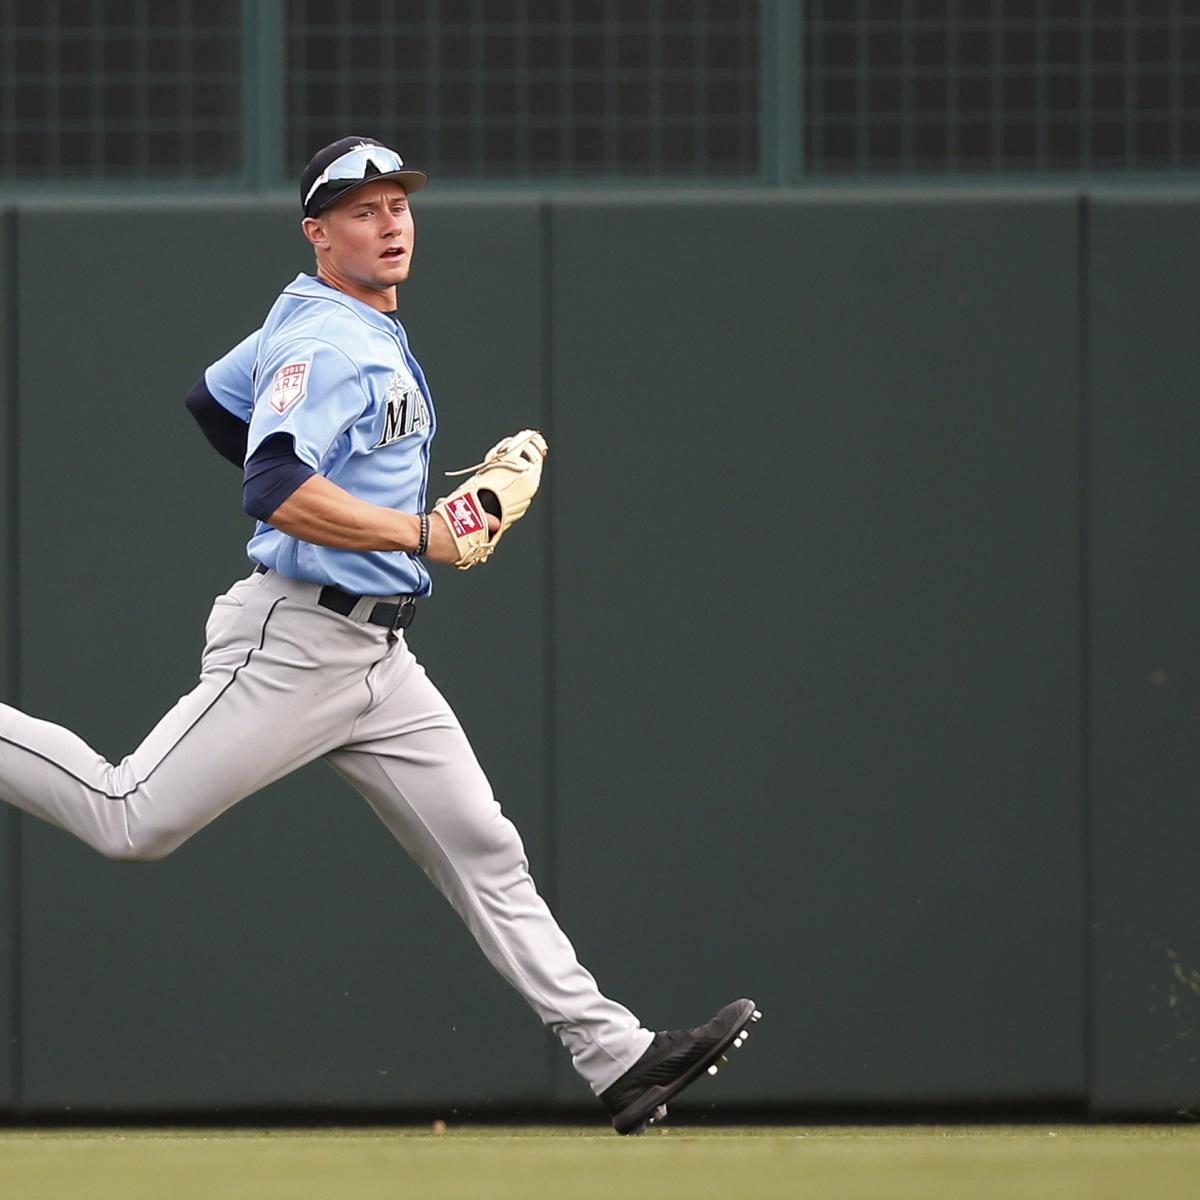 Report: Jarred Kelenic, MLB's No. 4 Prospect, to Be Called Up by Mariners thumbnail